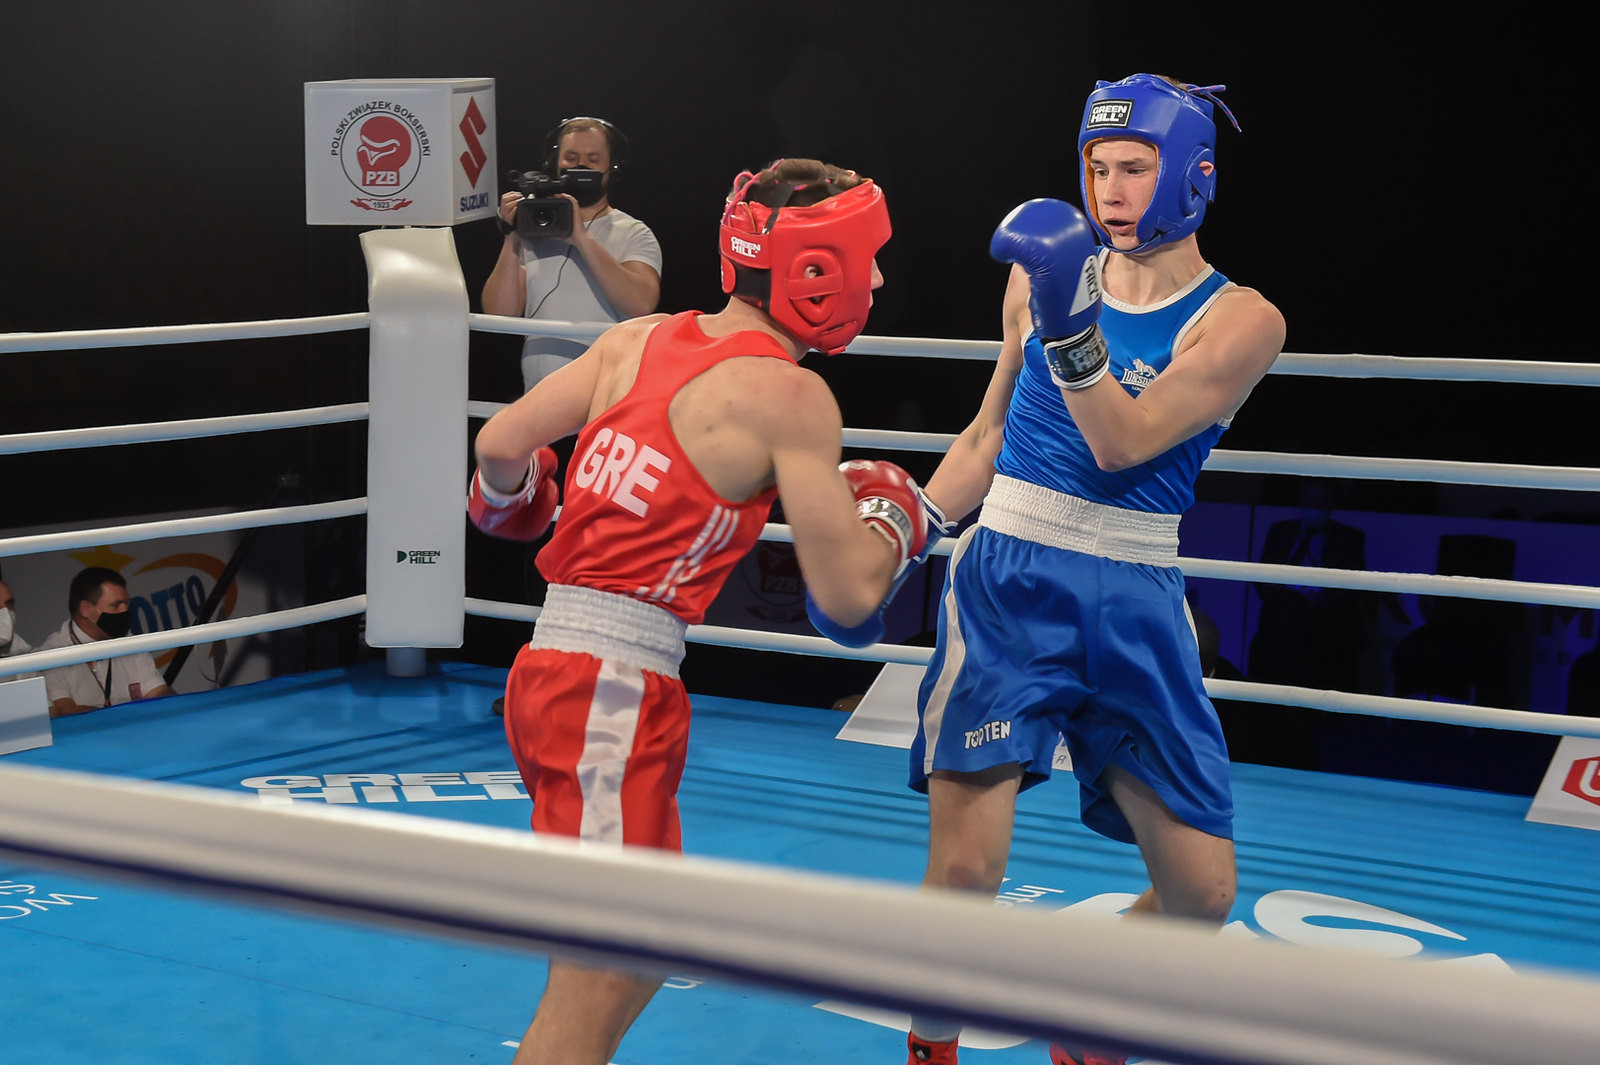 Action hots up as preliminary round fights continue at AIBA Youth World Championships